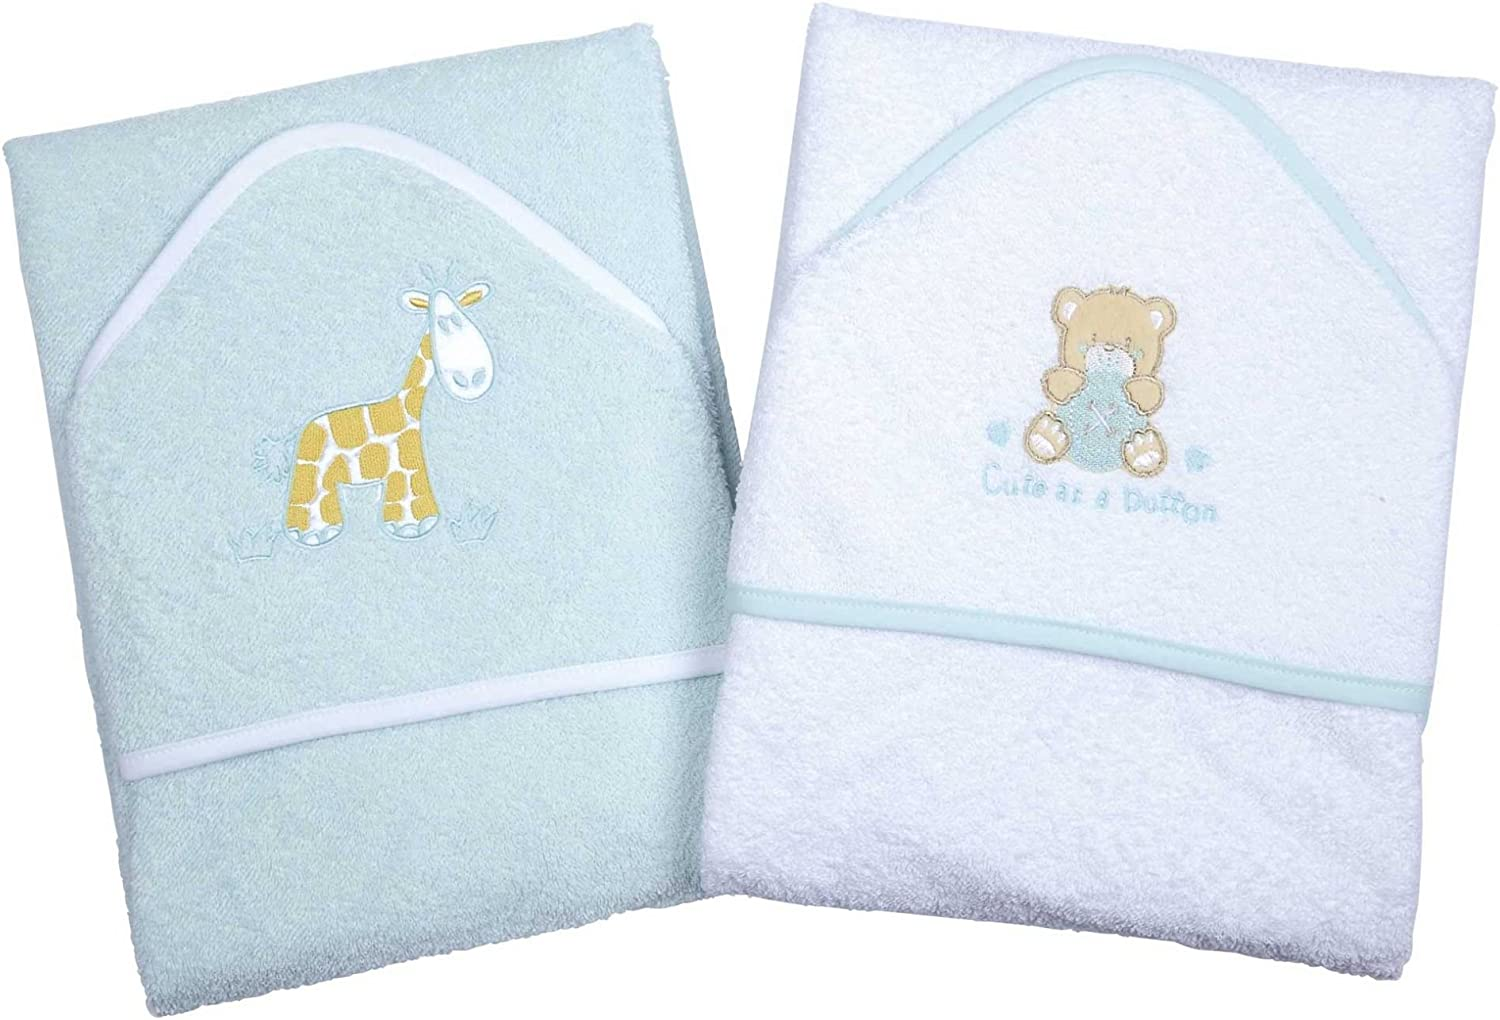 100/% Cotton In Pink or Blue with Cute Animal Appliques A Set of Two Luxury Hooded Baby Bath Towels